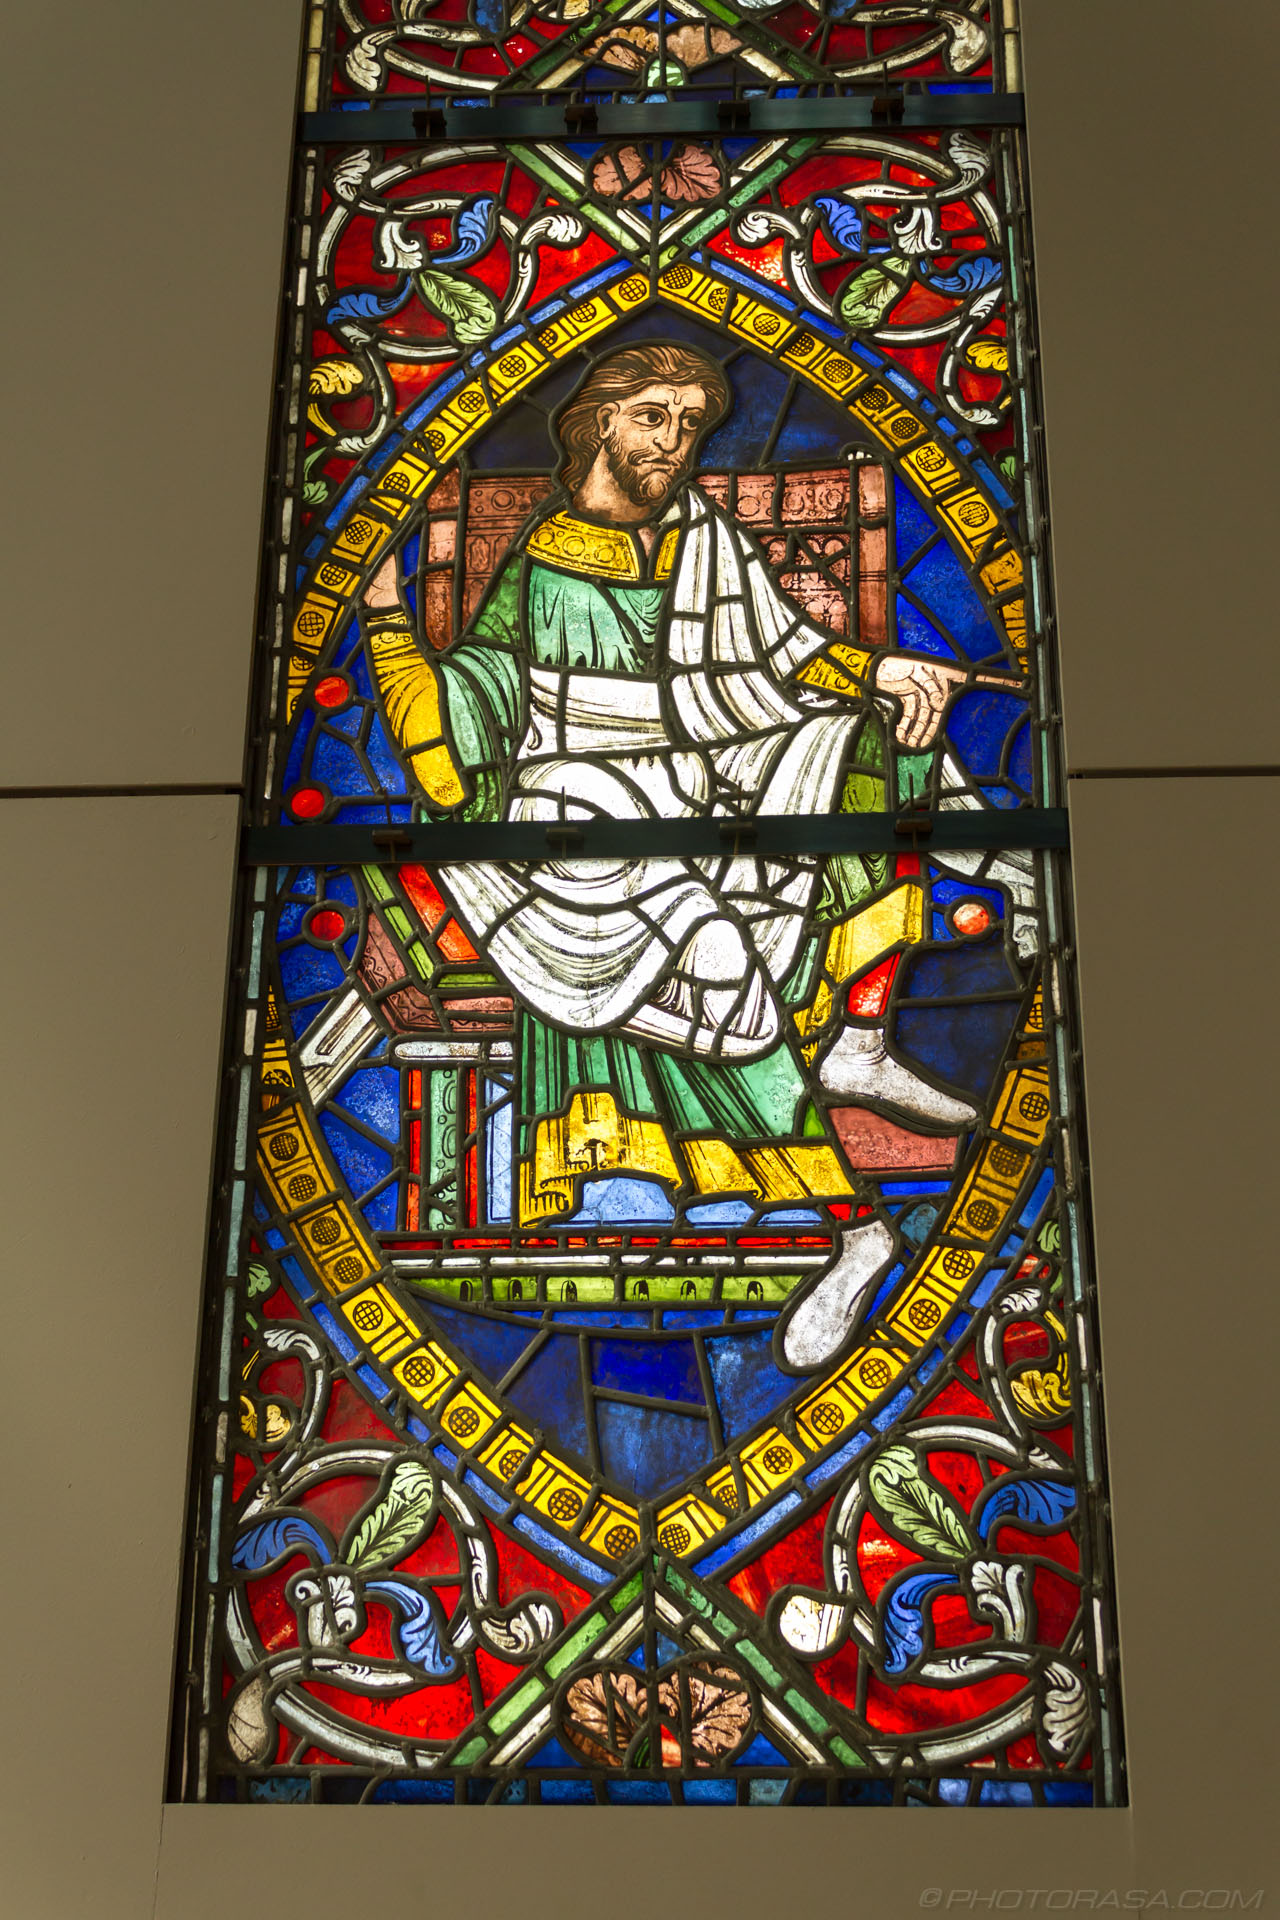 https://photorasa.com/genealogical-stained-glass-the-ancestors-of-jesus/josiah-stained-glass/